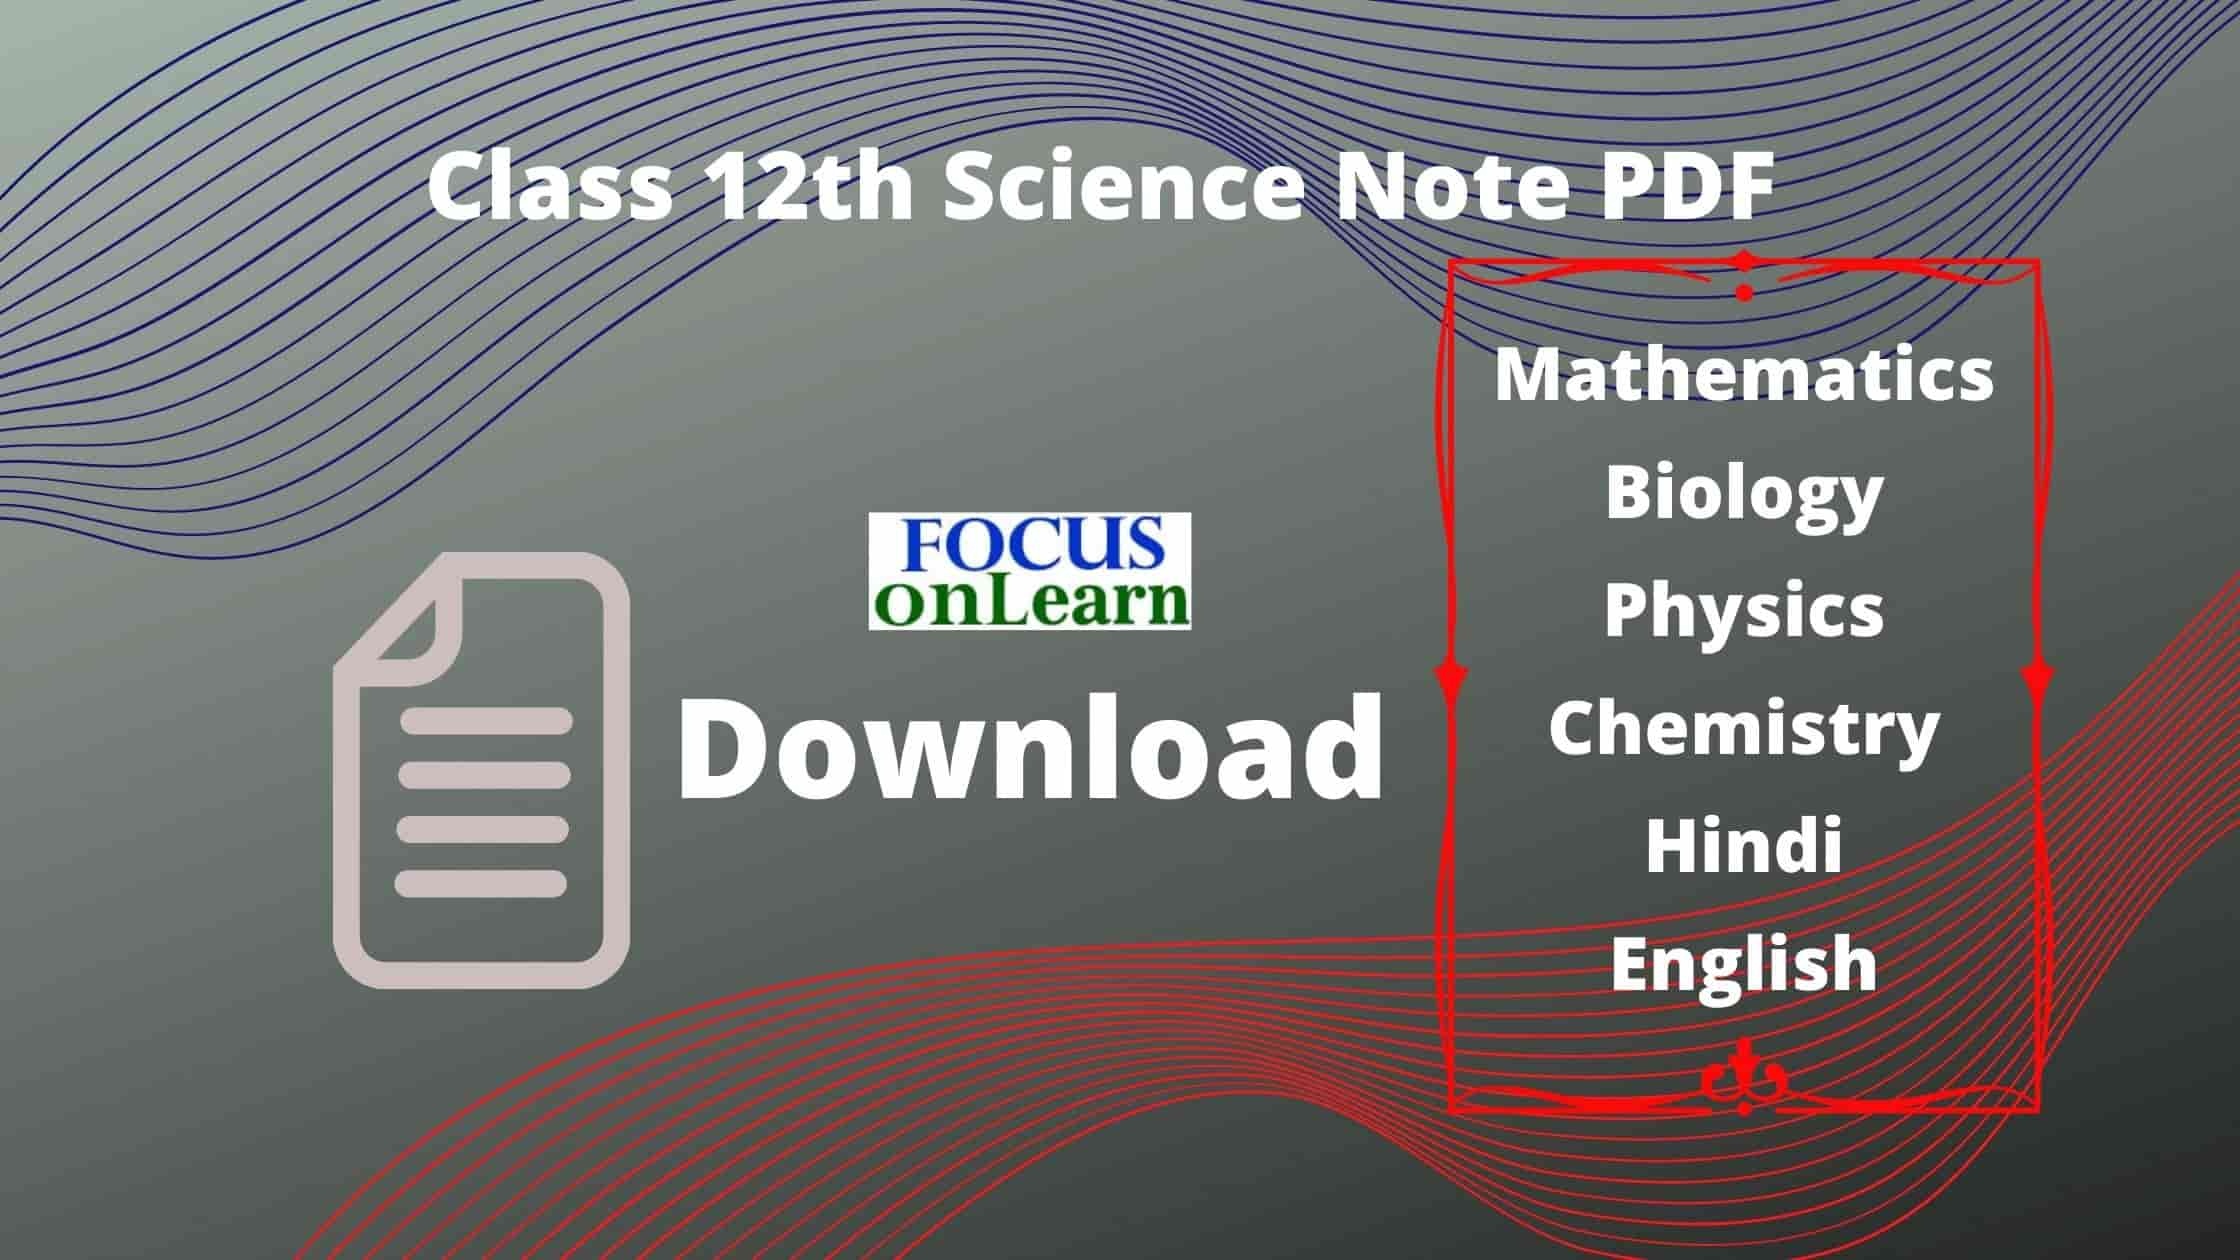 Class 12th Science Note PDF